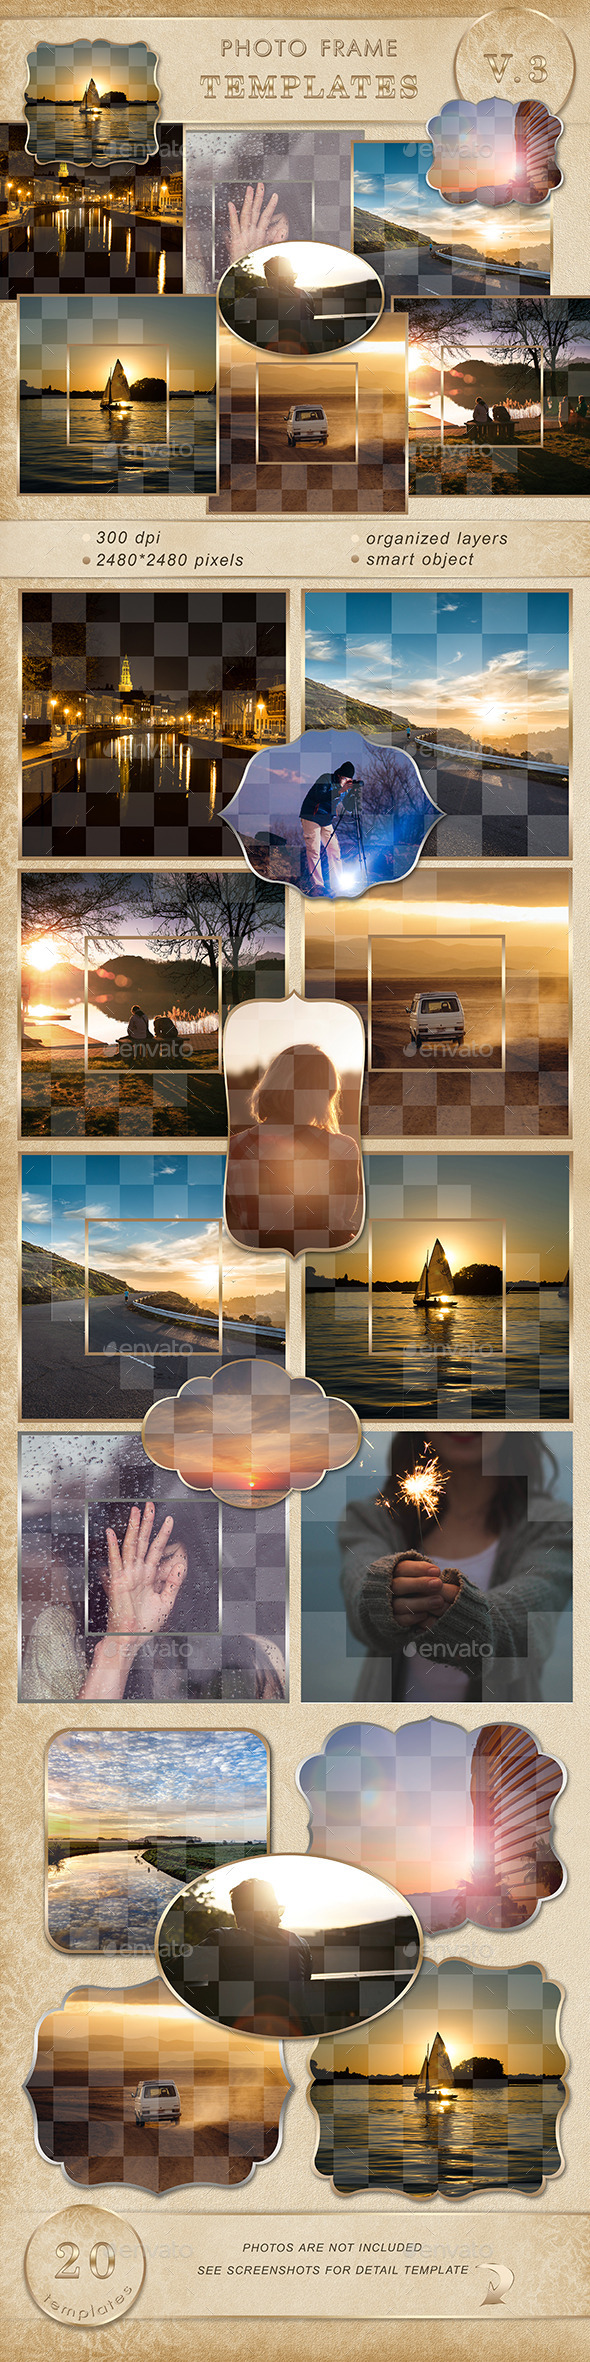 Photo frame templates.V3 - Artistic Photo Templates